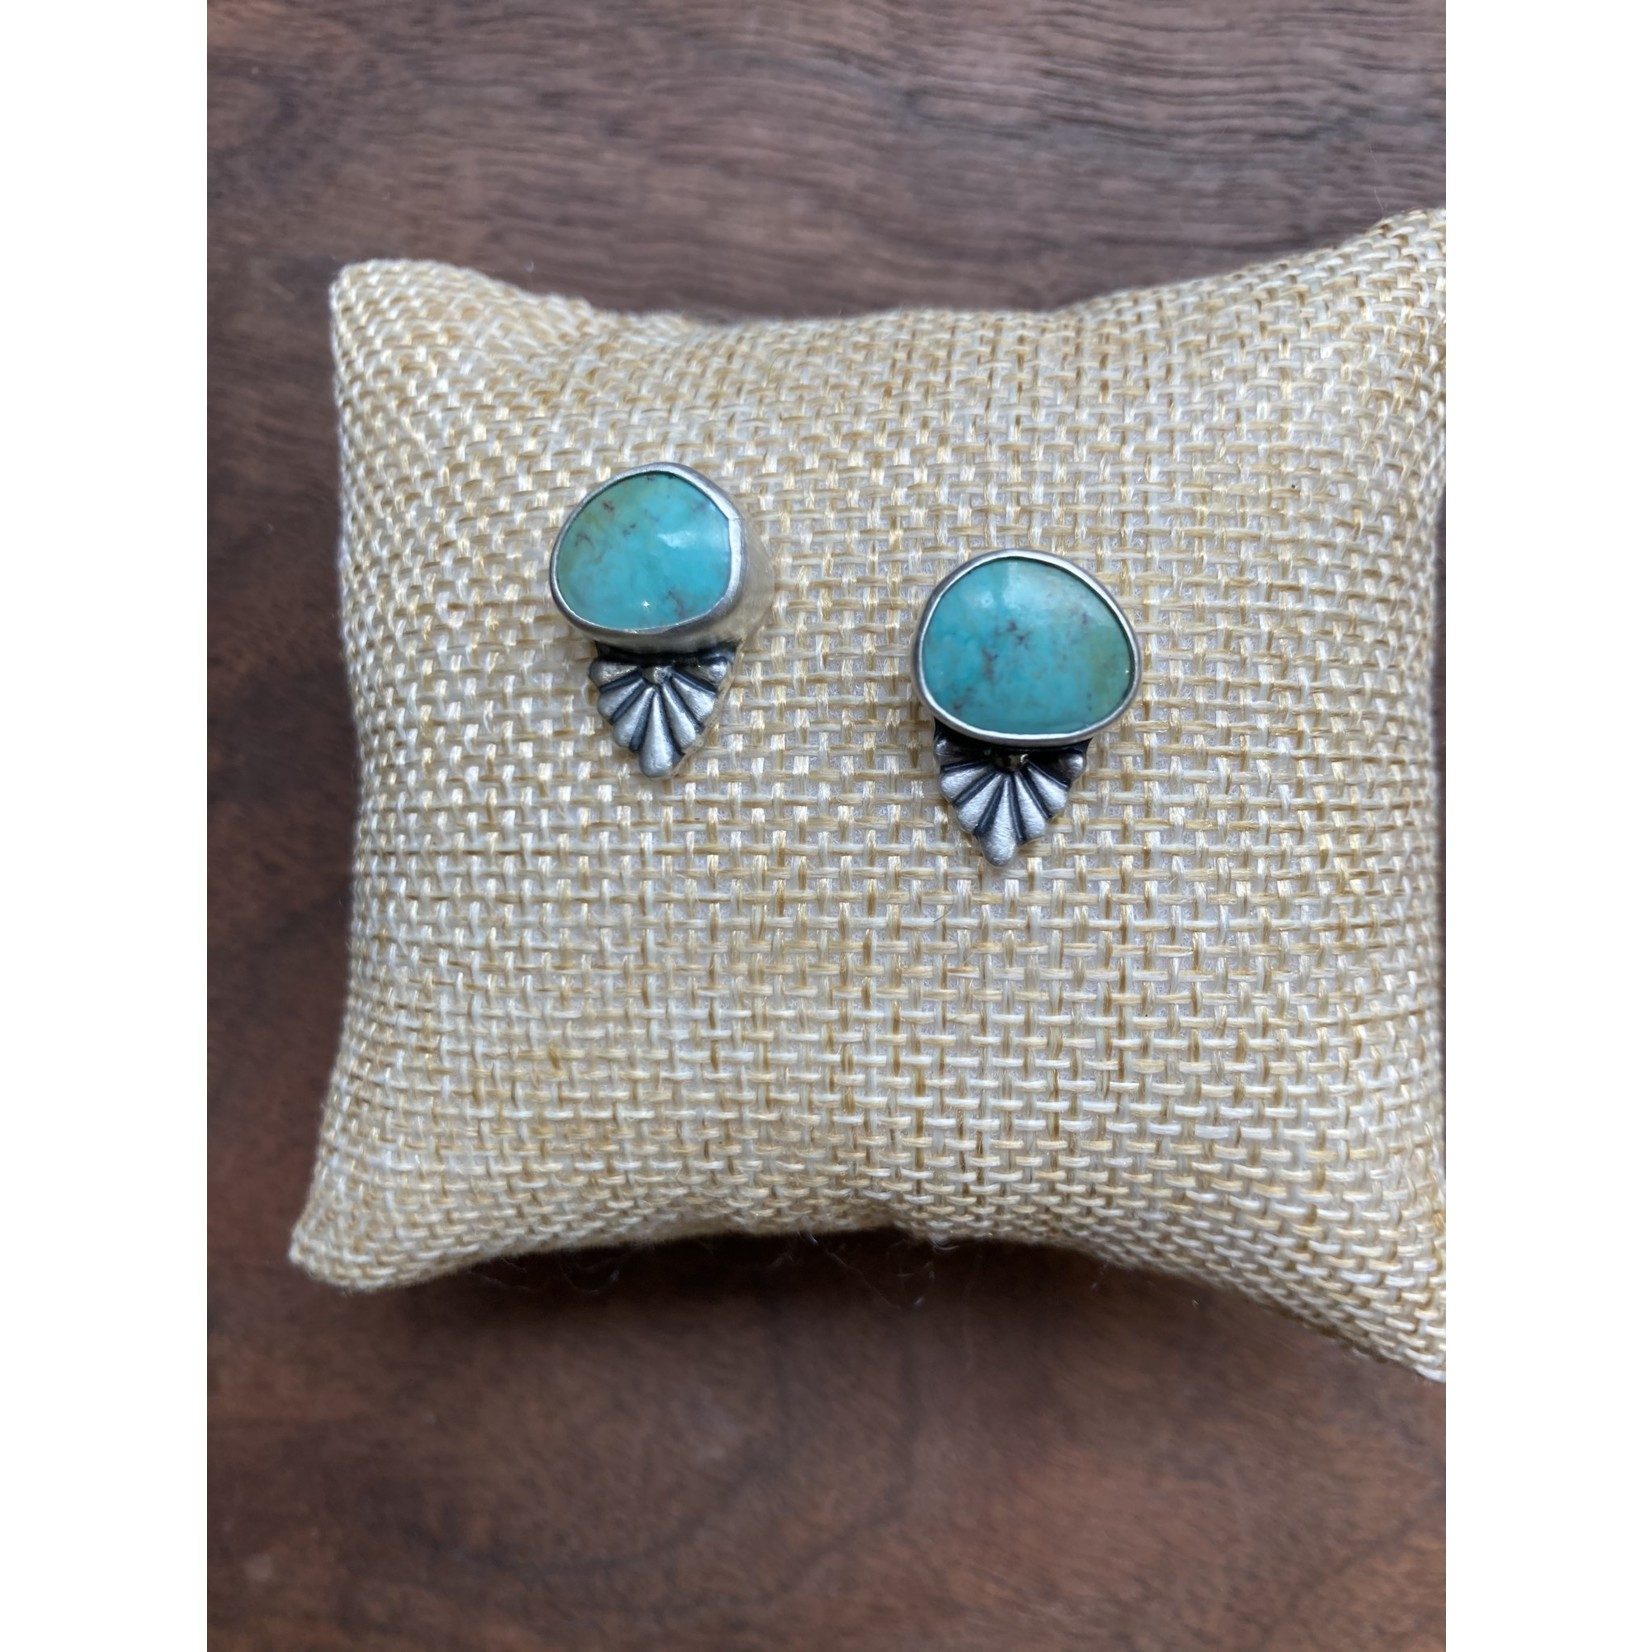 Katherine Thompson Sterling & Stone | Oval Turquoise Earrings